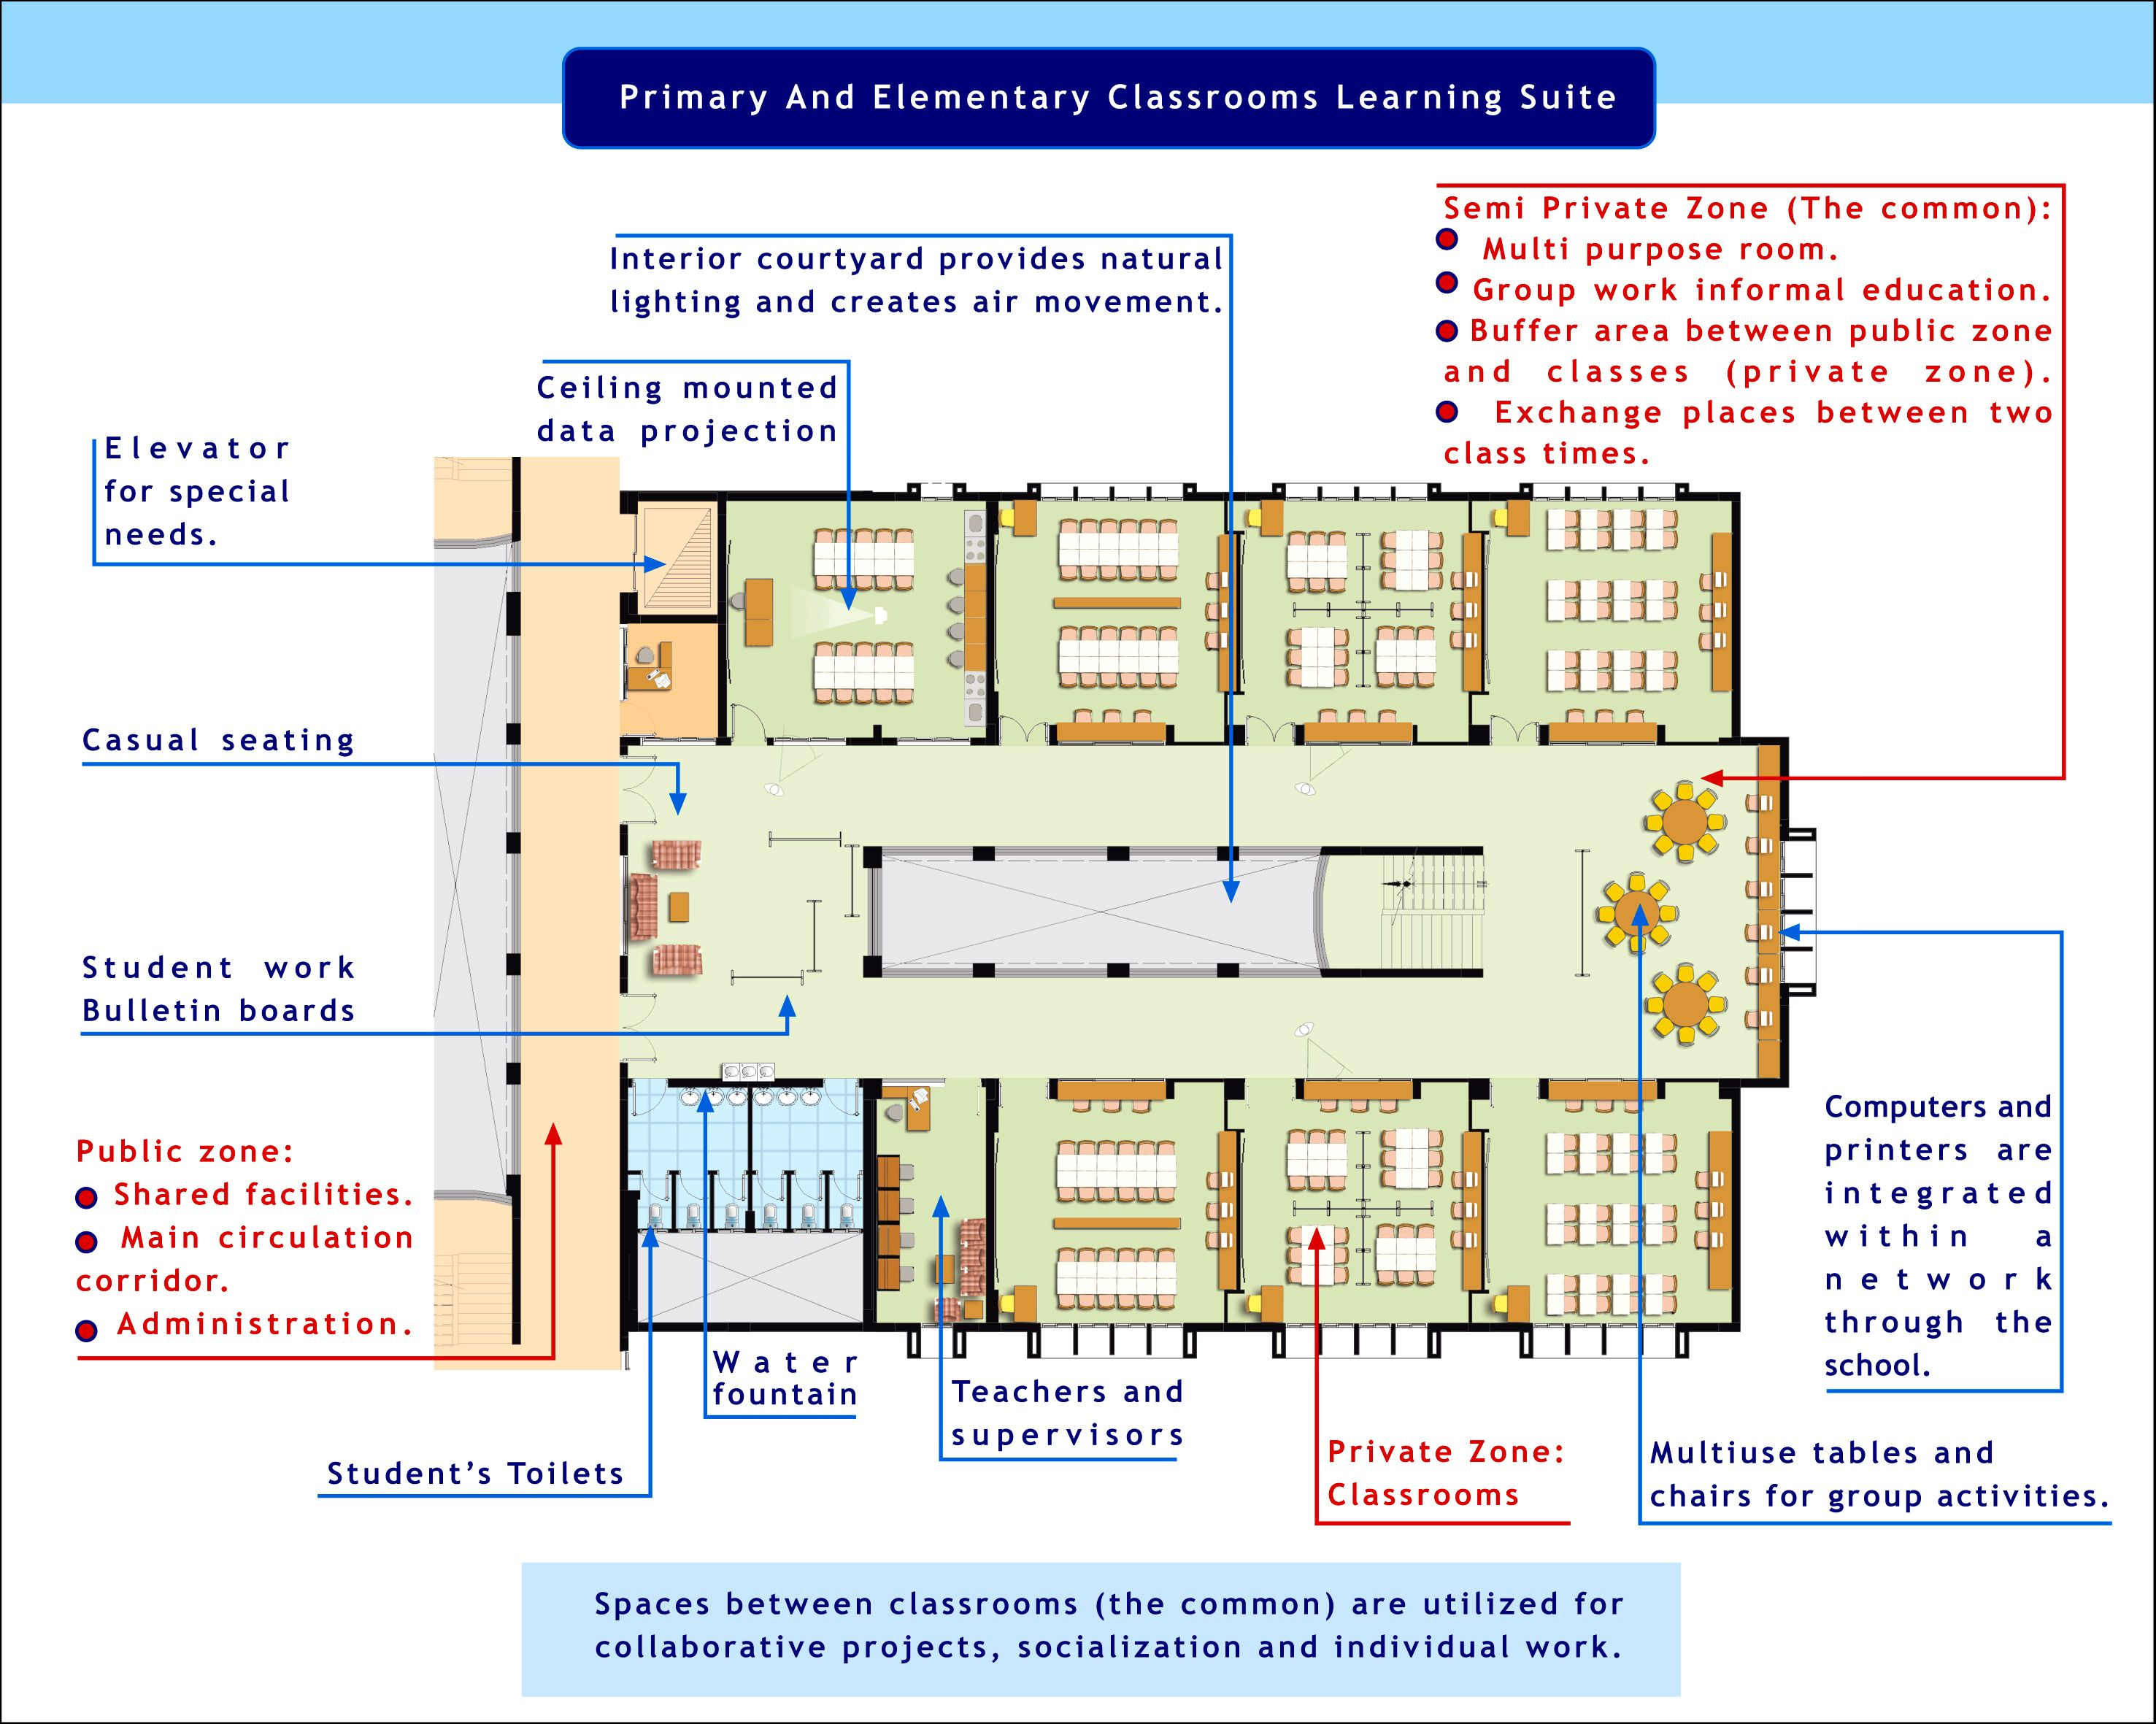 Primary And Elementary Classrooms Learning Suite